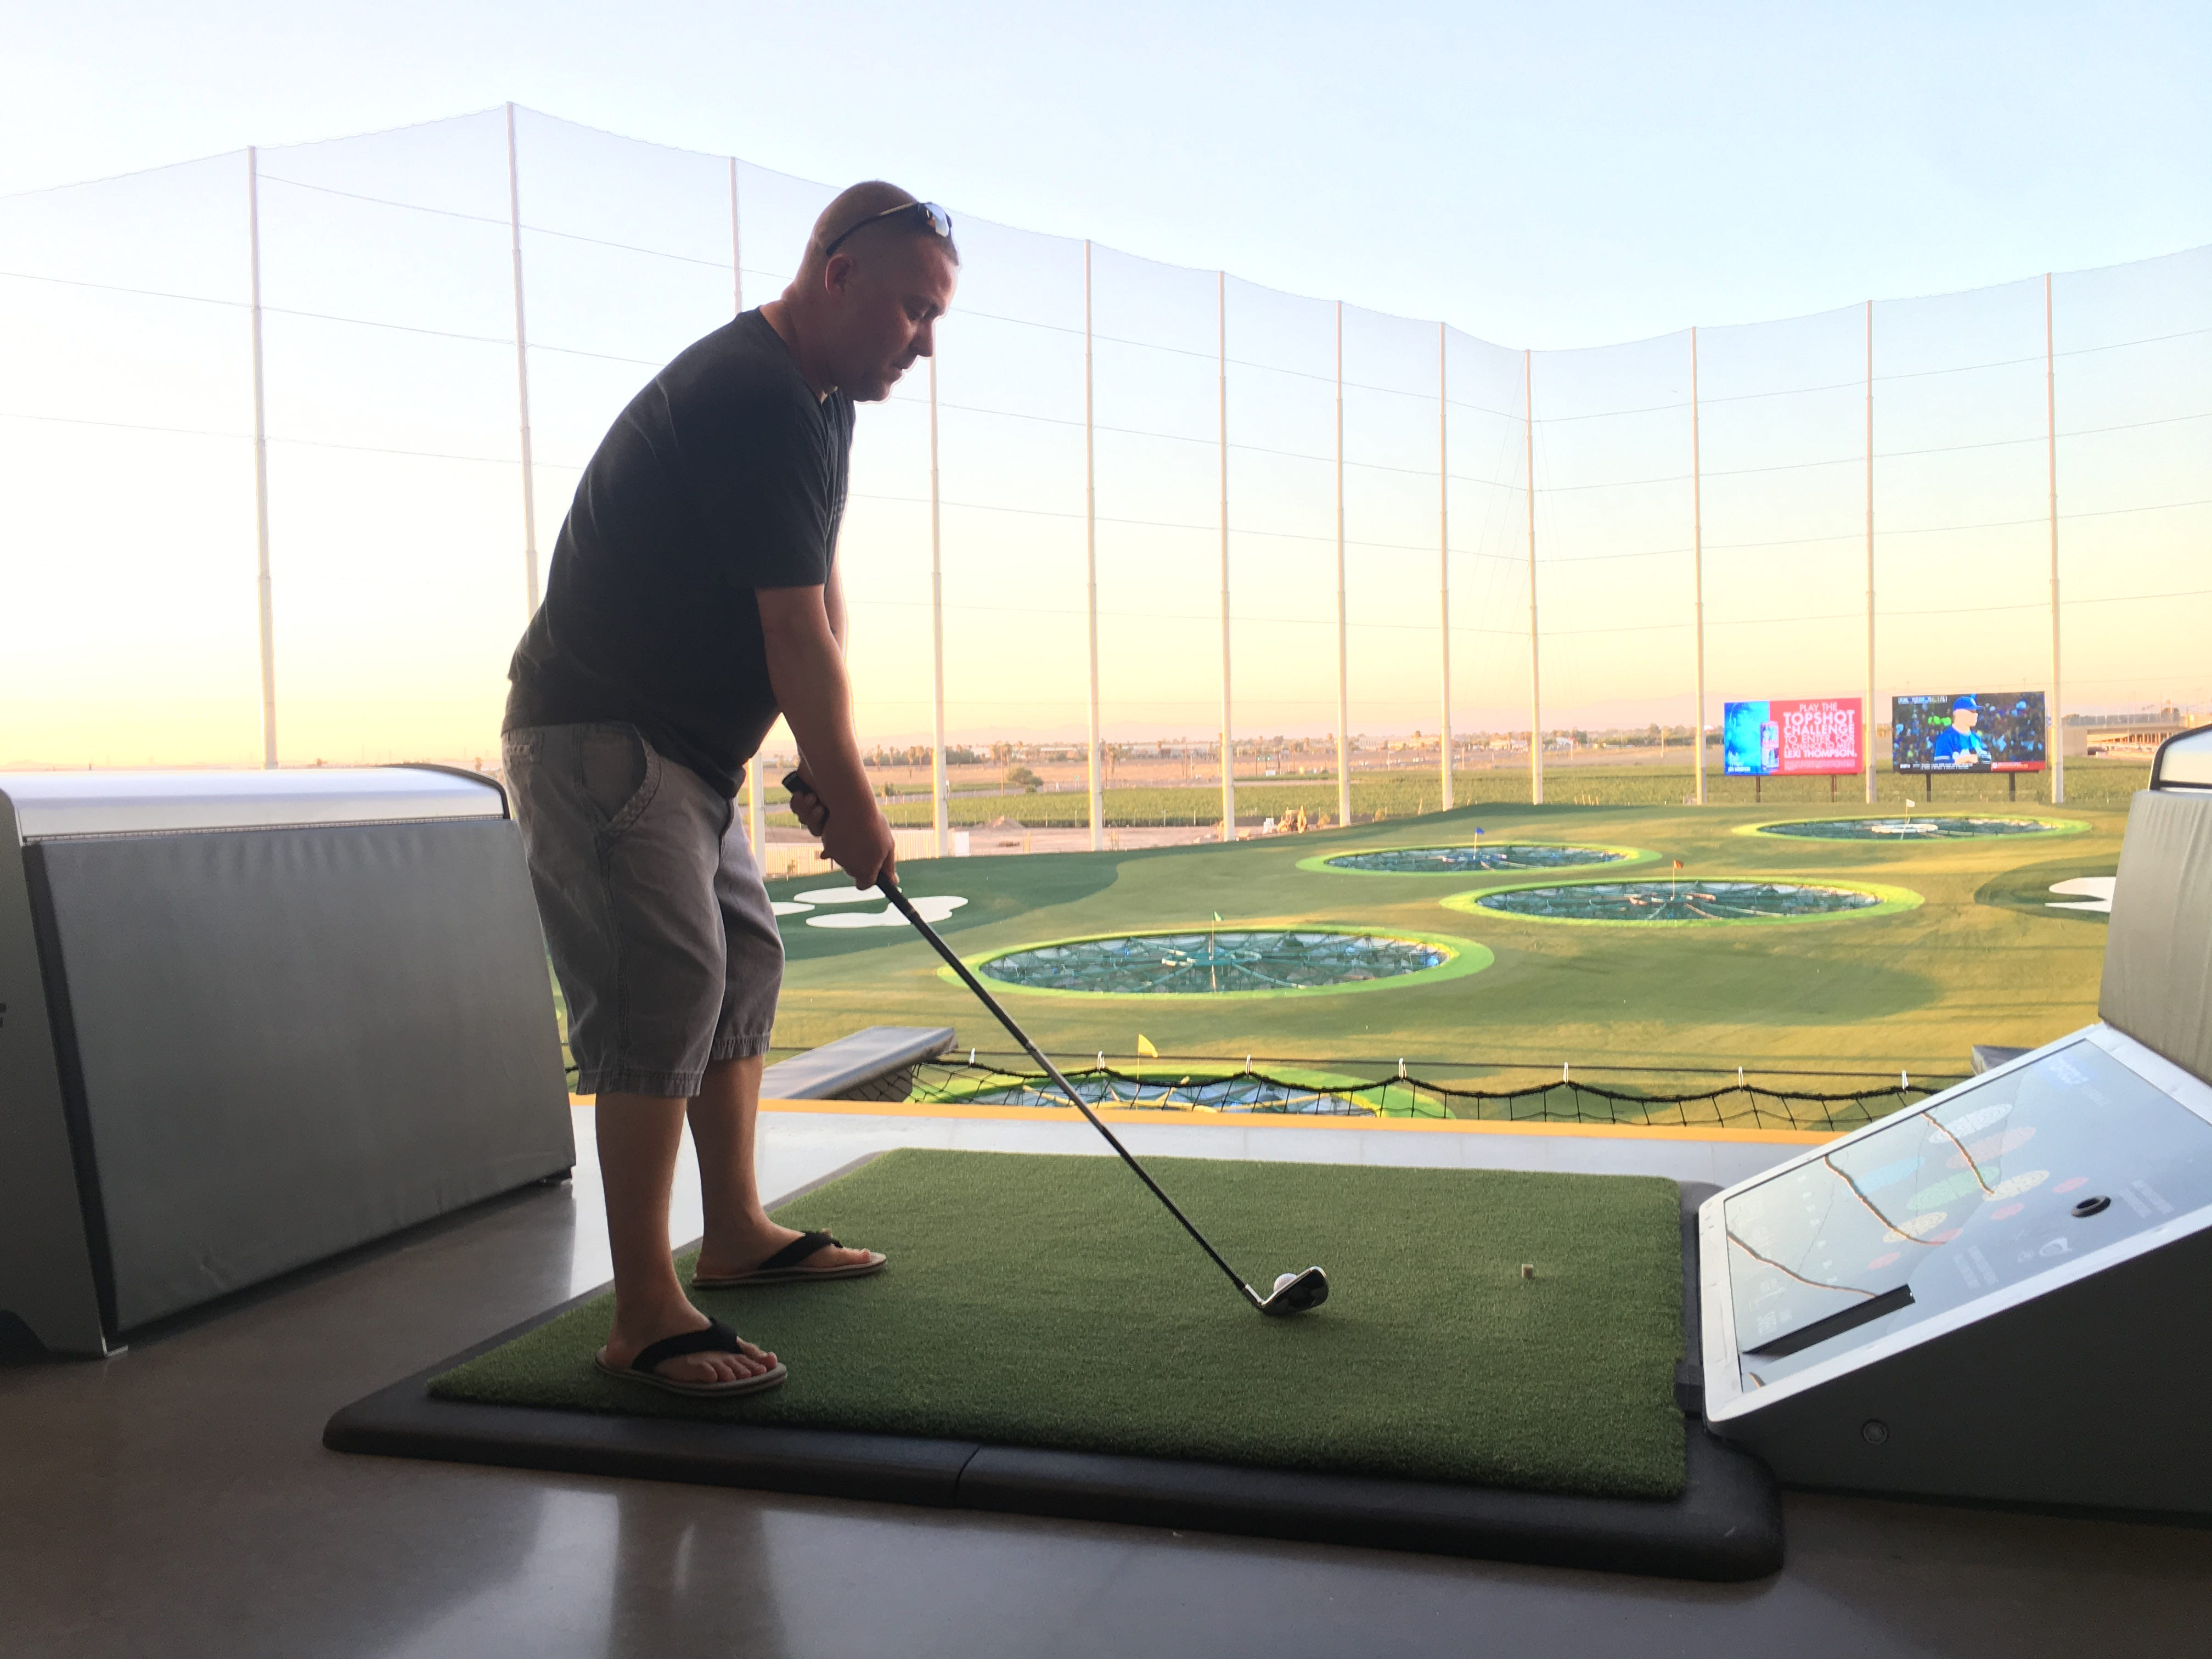 Buckeye resident Casey Stanfield lines up a shot from one of Topgolf Glendale's hitting bays during a tour of the newest Valley location near State Farm Stadium. Topgolf Glendale is scheduled to open in September.